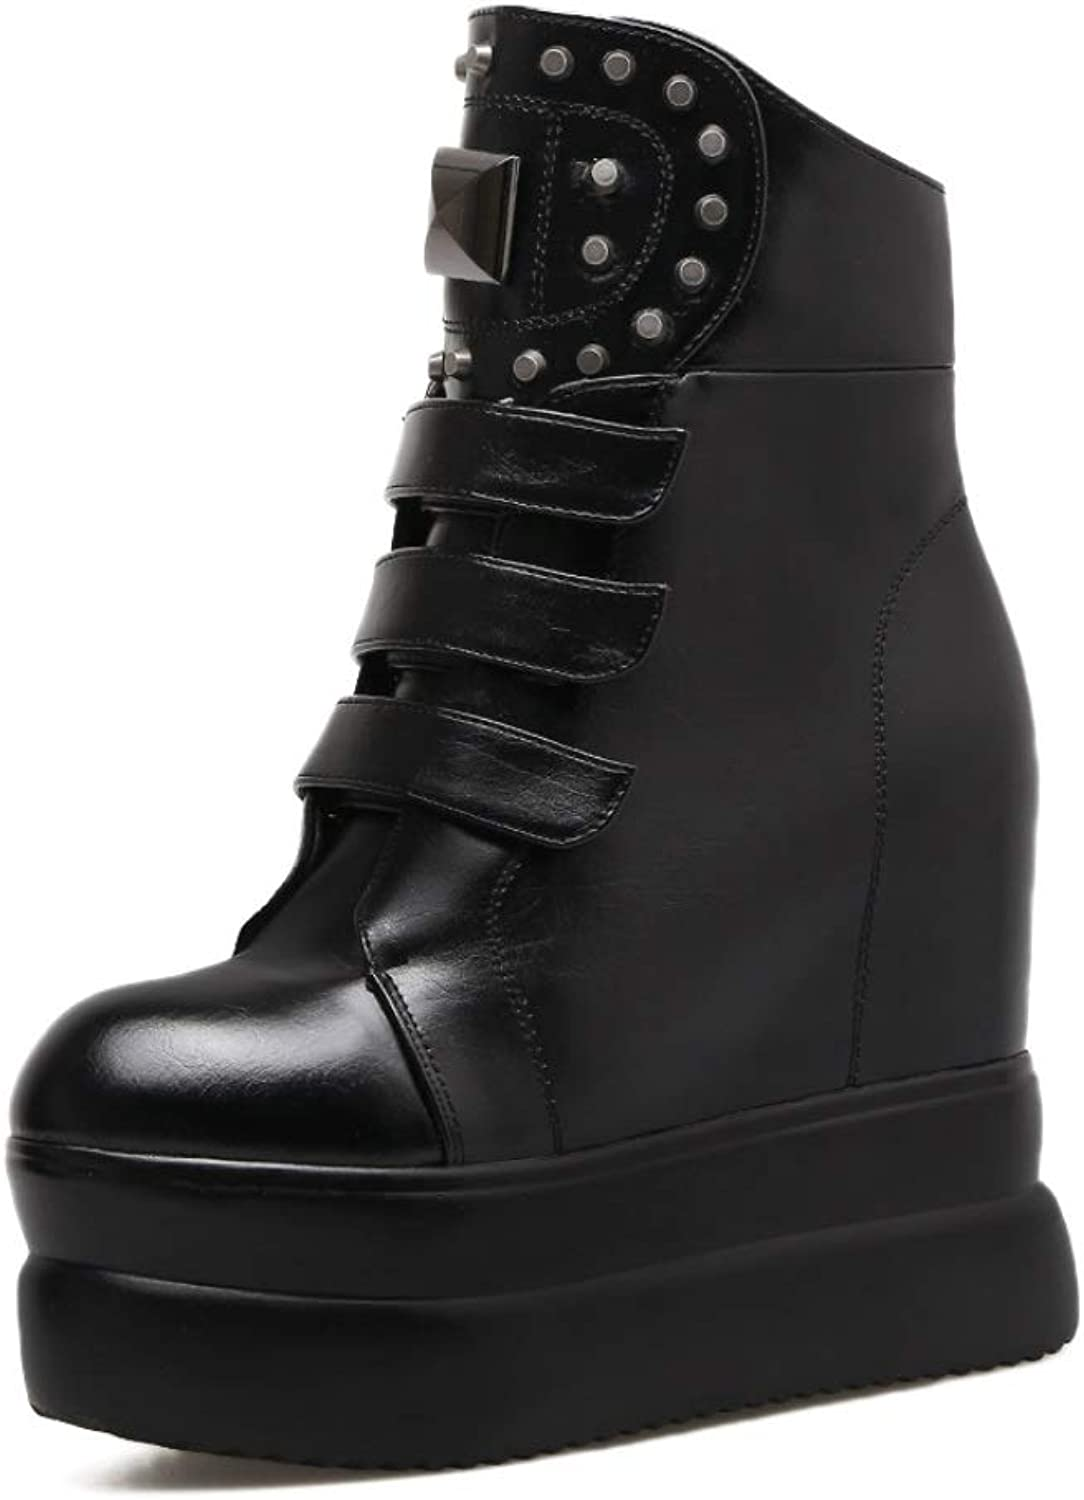 Women Platform Wedge Ankle Boots Hidden High Heels 11 cm Trainers Boots High Heel Rivets Black Warm Fashion Booties Party Leisure Booties Size